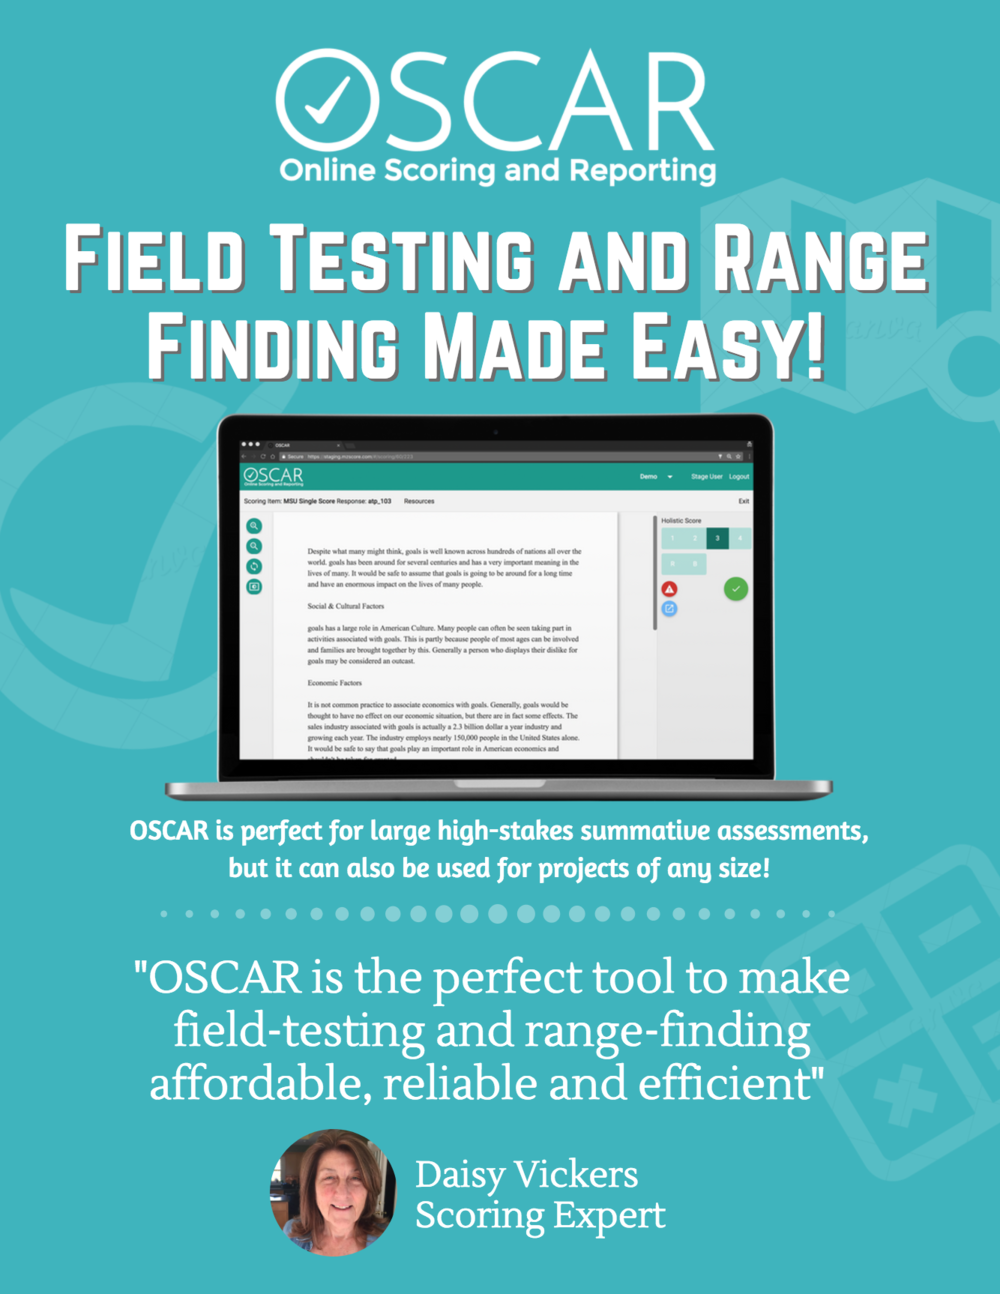 OSCAR is the perfect online tool for distributed or on-site range-finding or field testing!